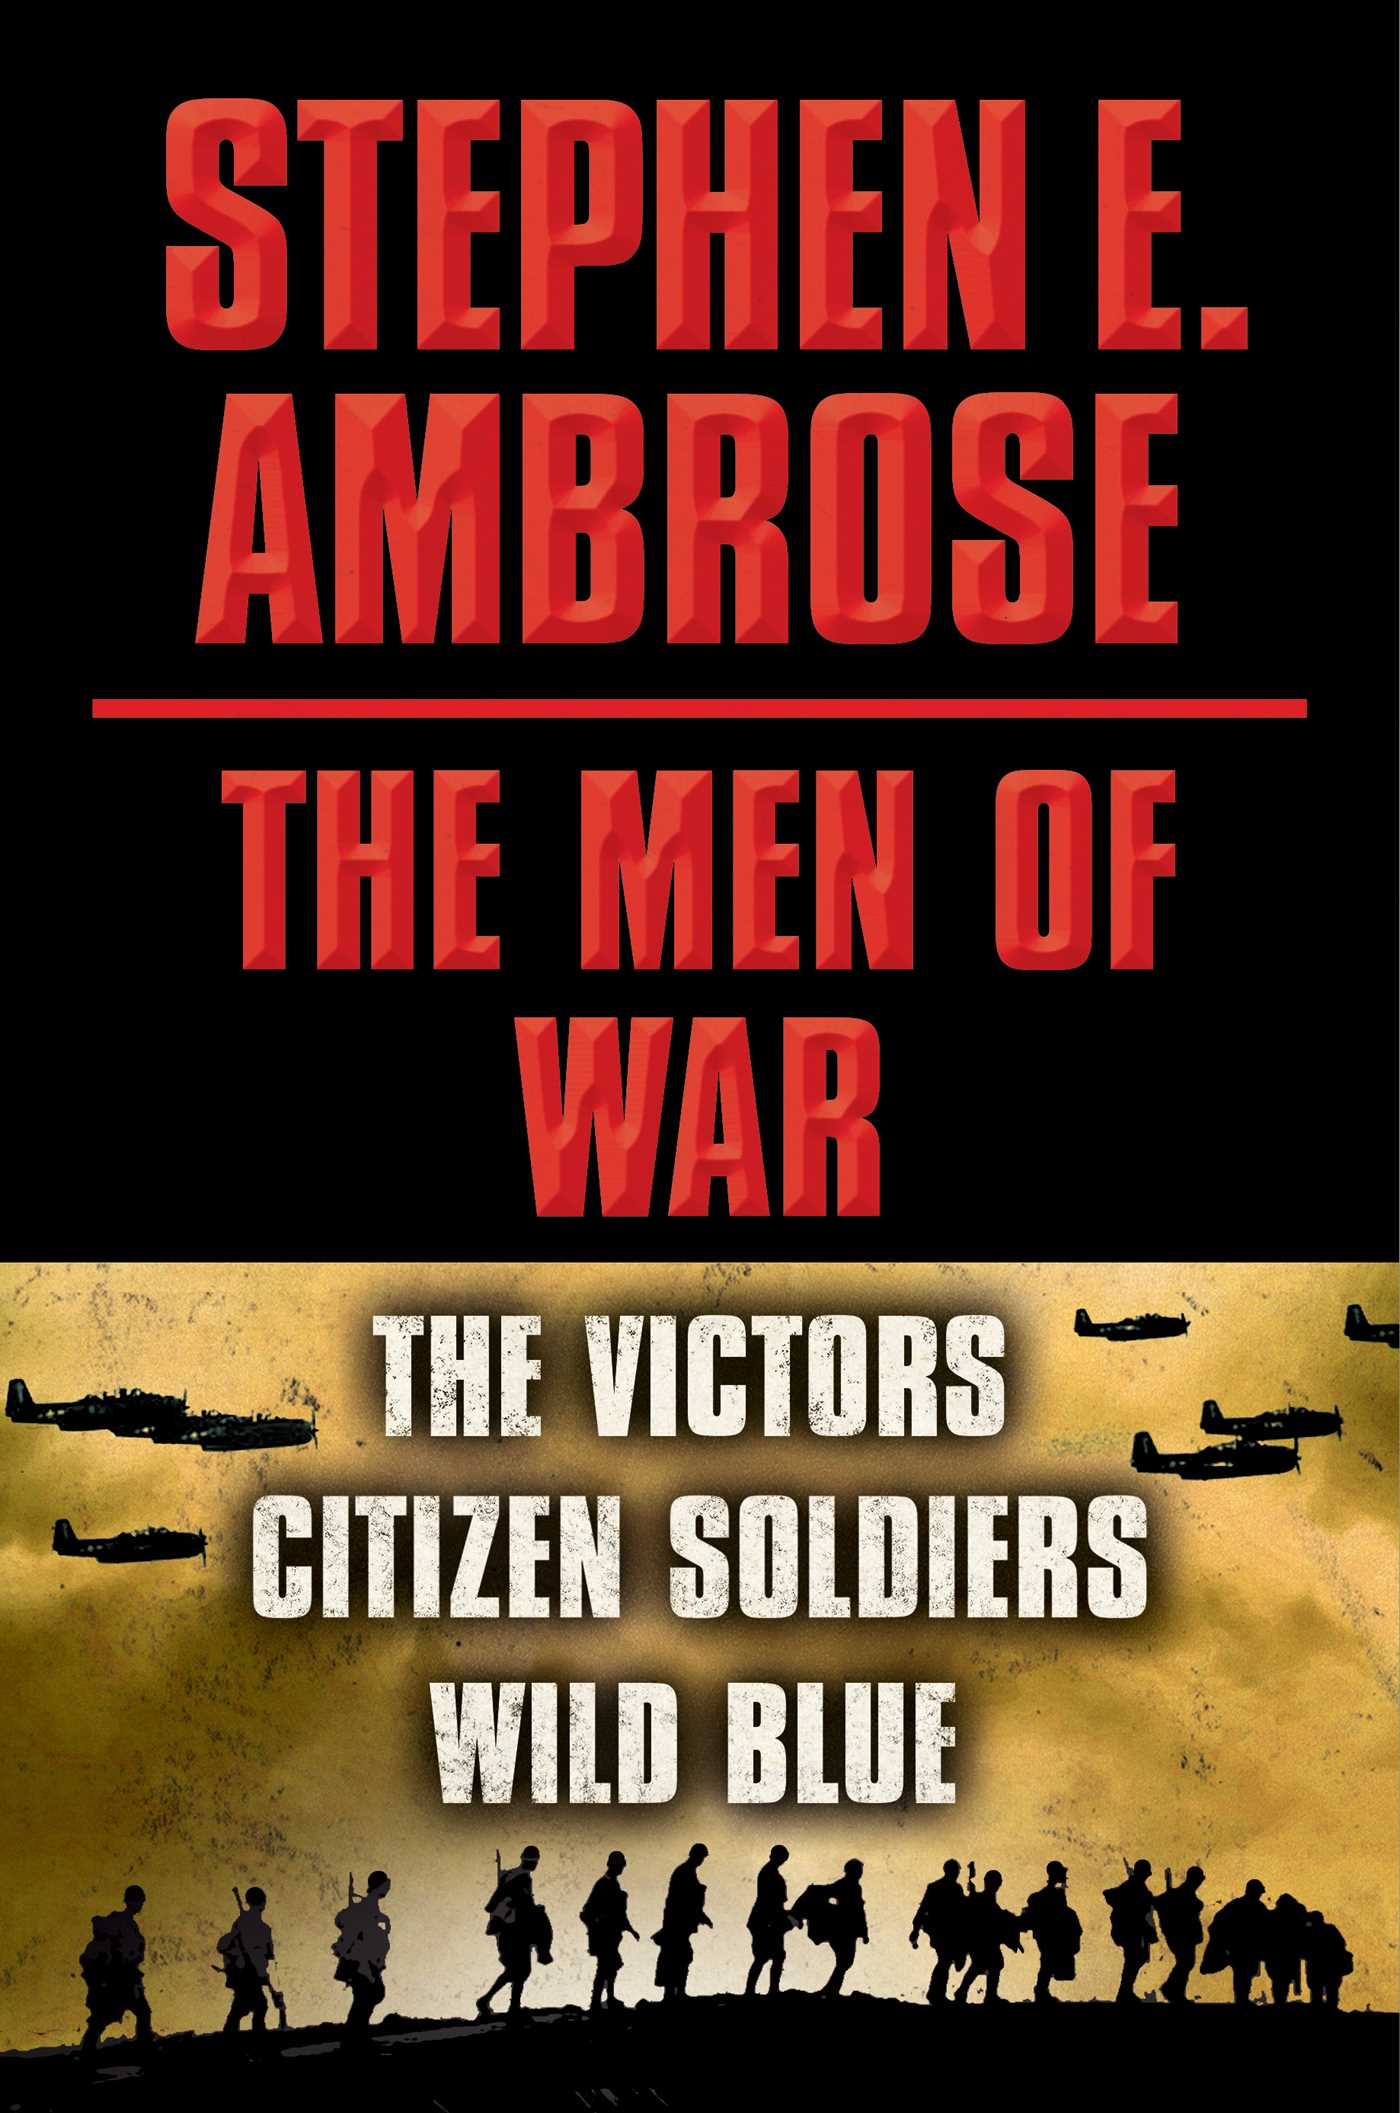 Stephen e ambrose the men of war e book box set 9781476756929 hr